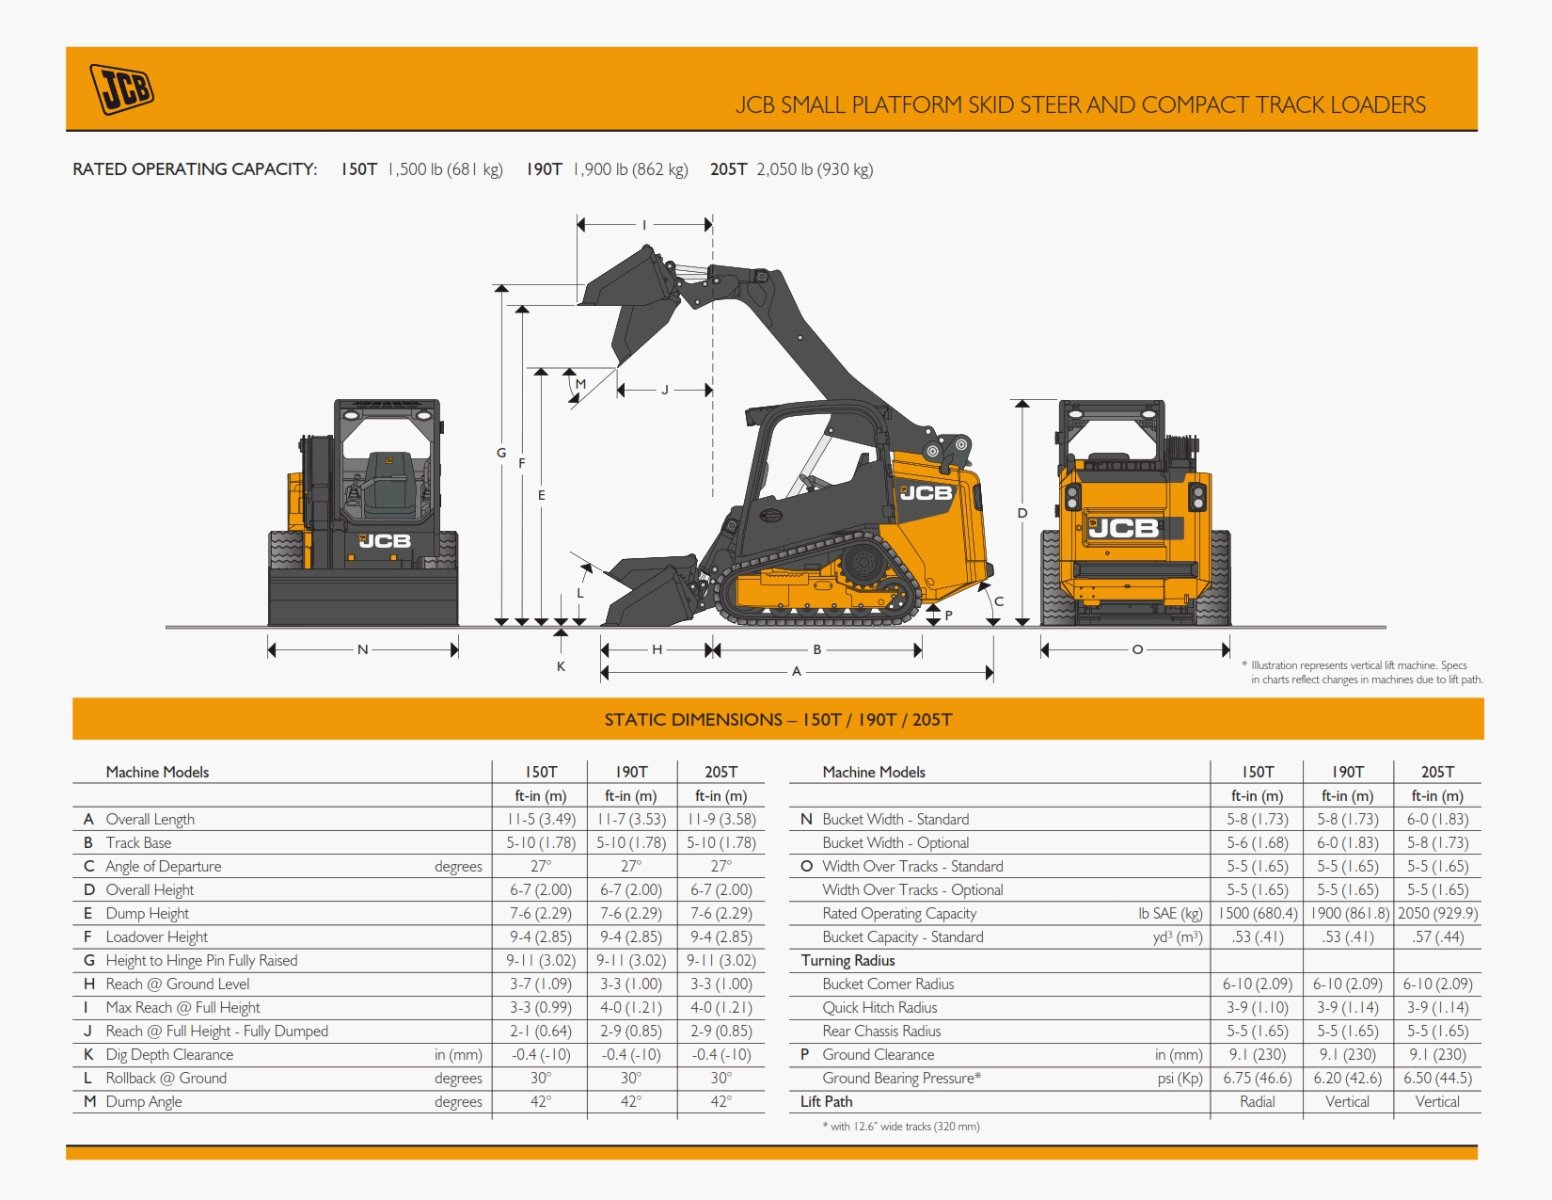 SKID STEER JCB 205T SPECIFICATIONS